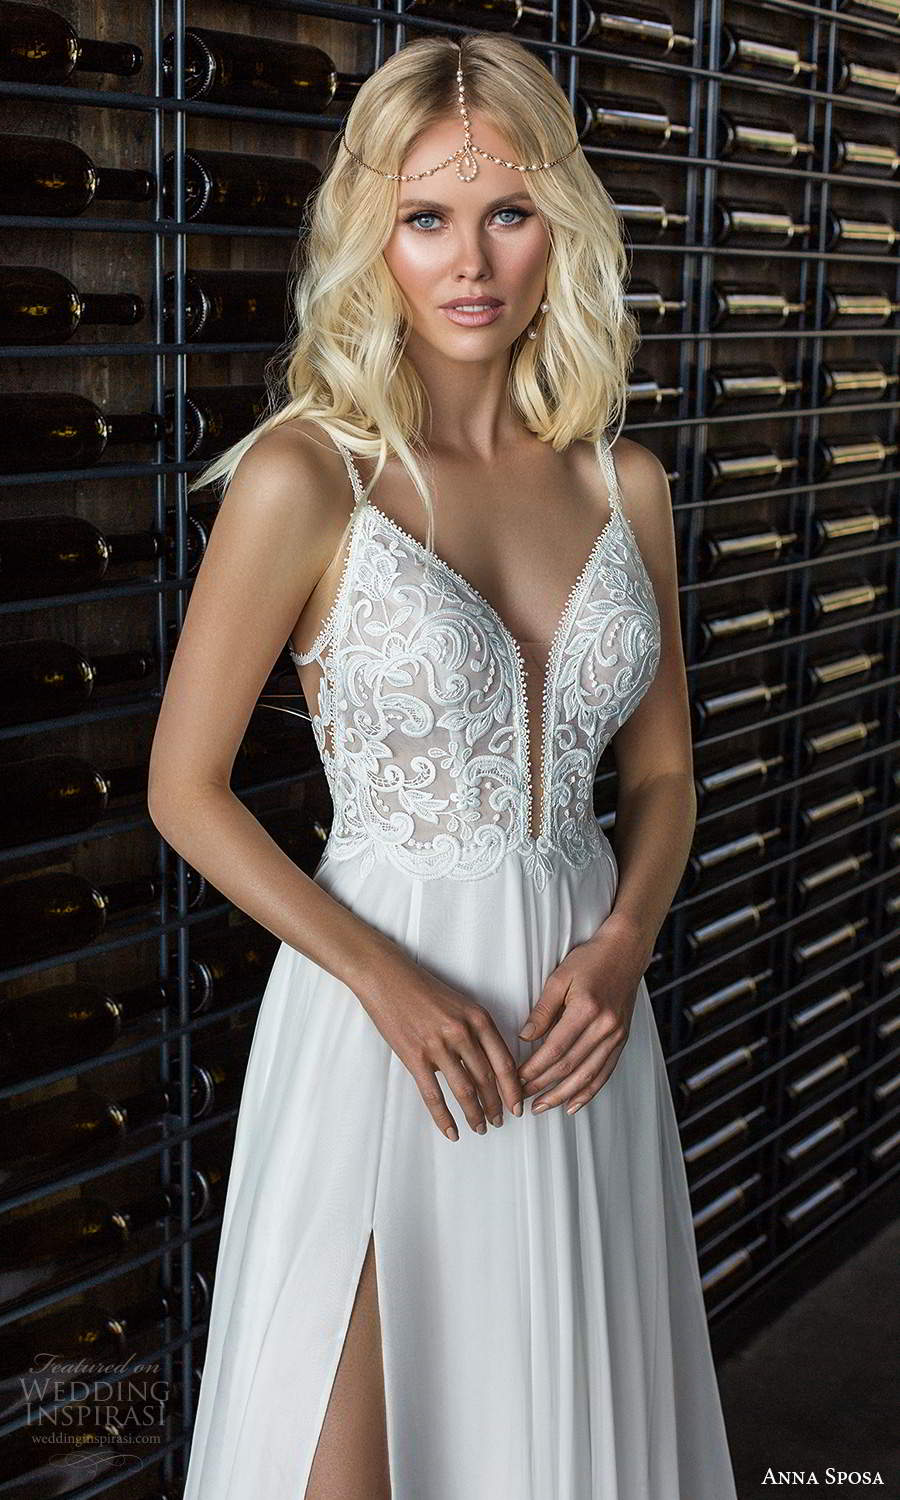 anna sposa 2021 boho bridal sleeveless straps plunging sweetheart neckline embellished bodice a line wedding dress slit skirt chapel train (1) zv